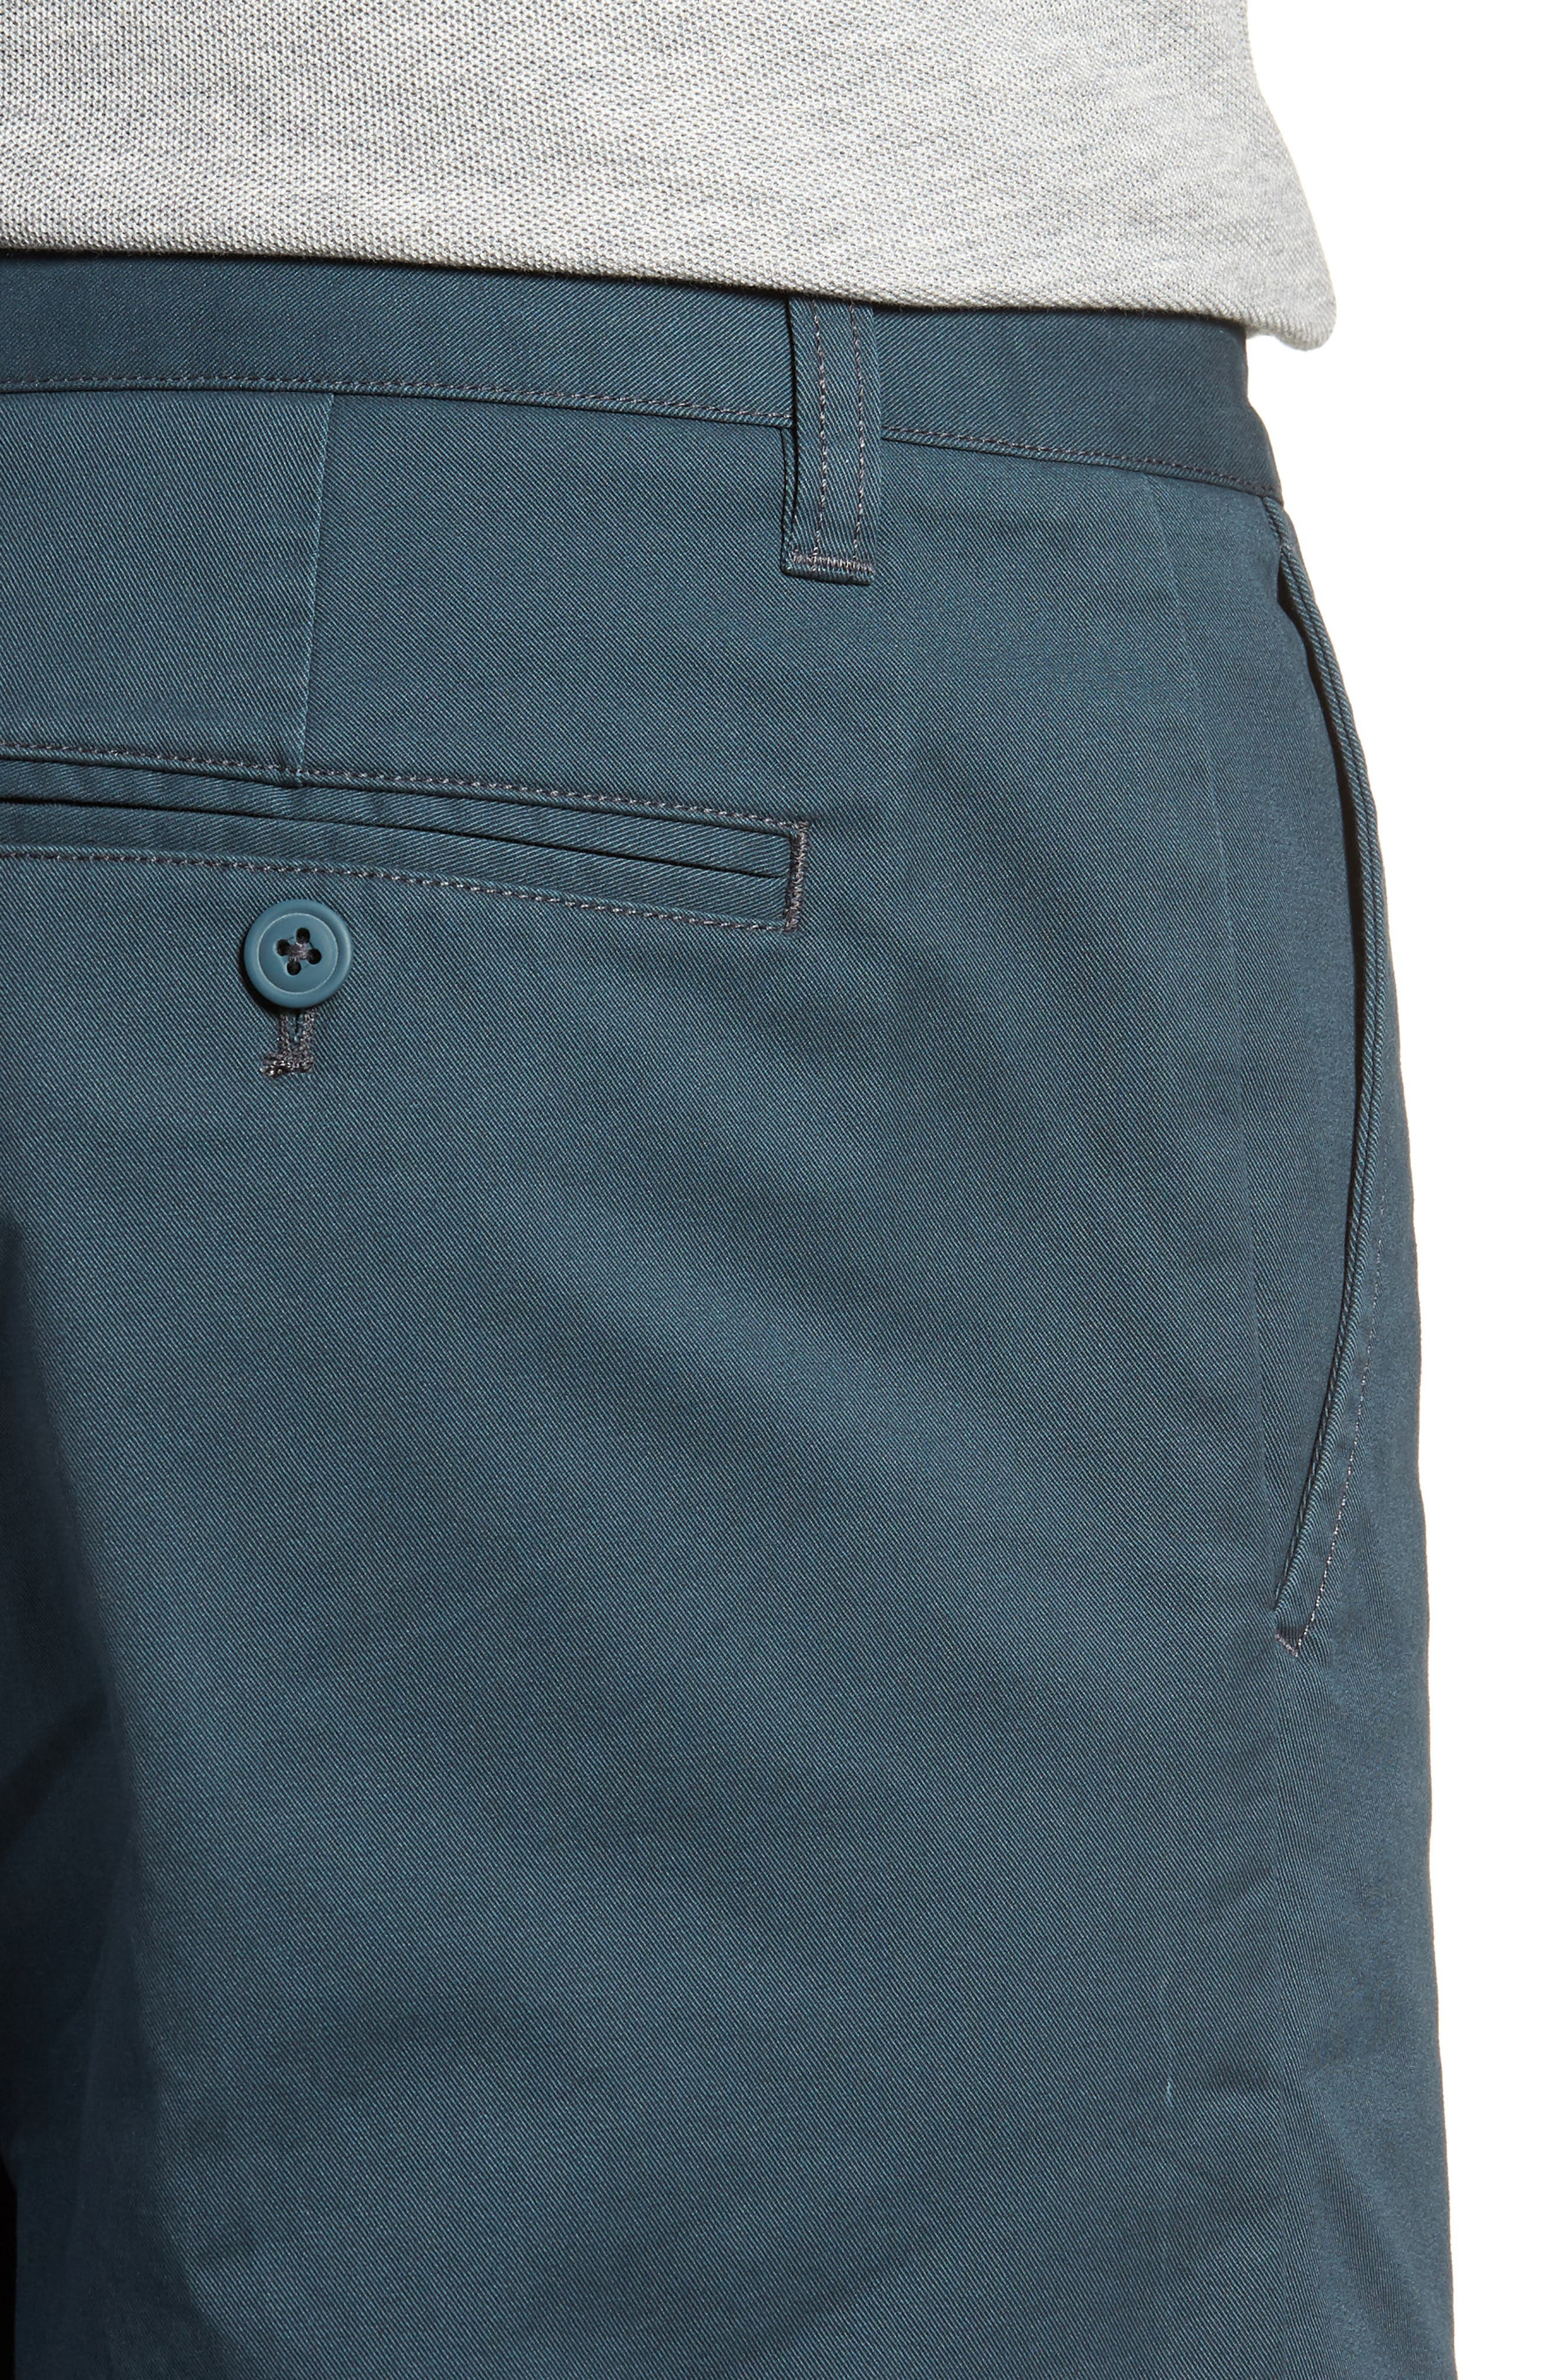 Stretch Washed Chino 11-Inch Shorts,                             Alternate thumbnail 68, color,